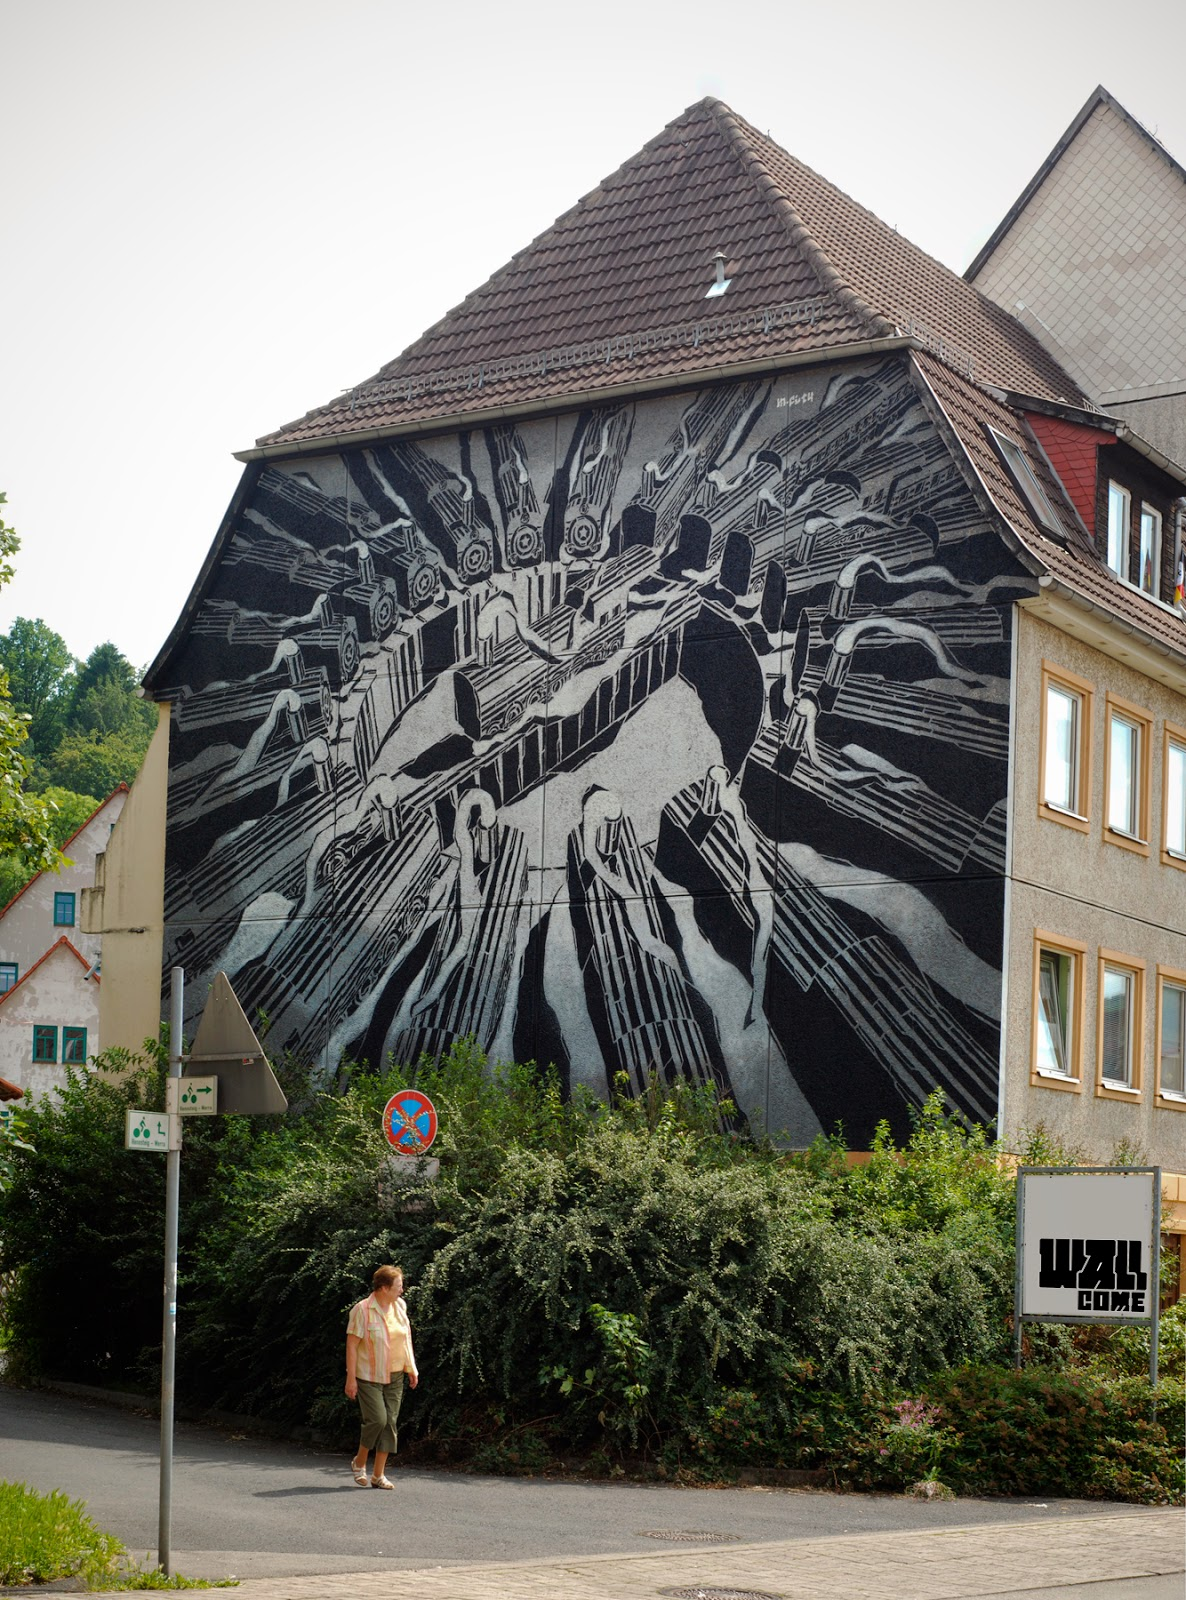 After Case and Ecb, it's M-City's turn to paint on the streets of Schmalkalden, Germany for the WallCome Street Art Festival 2014.